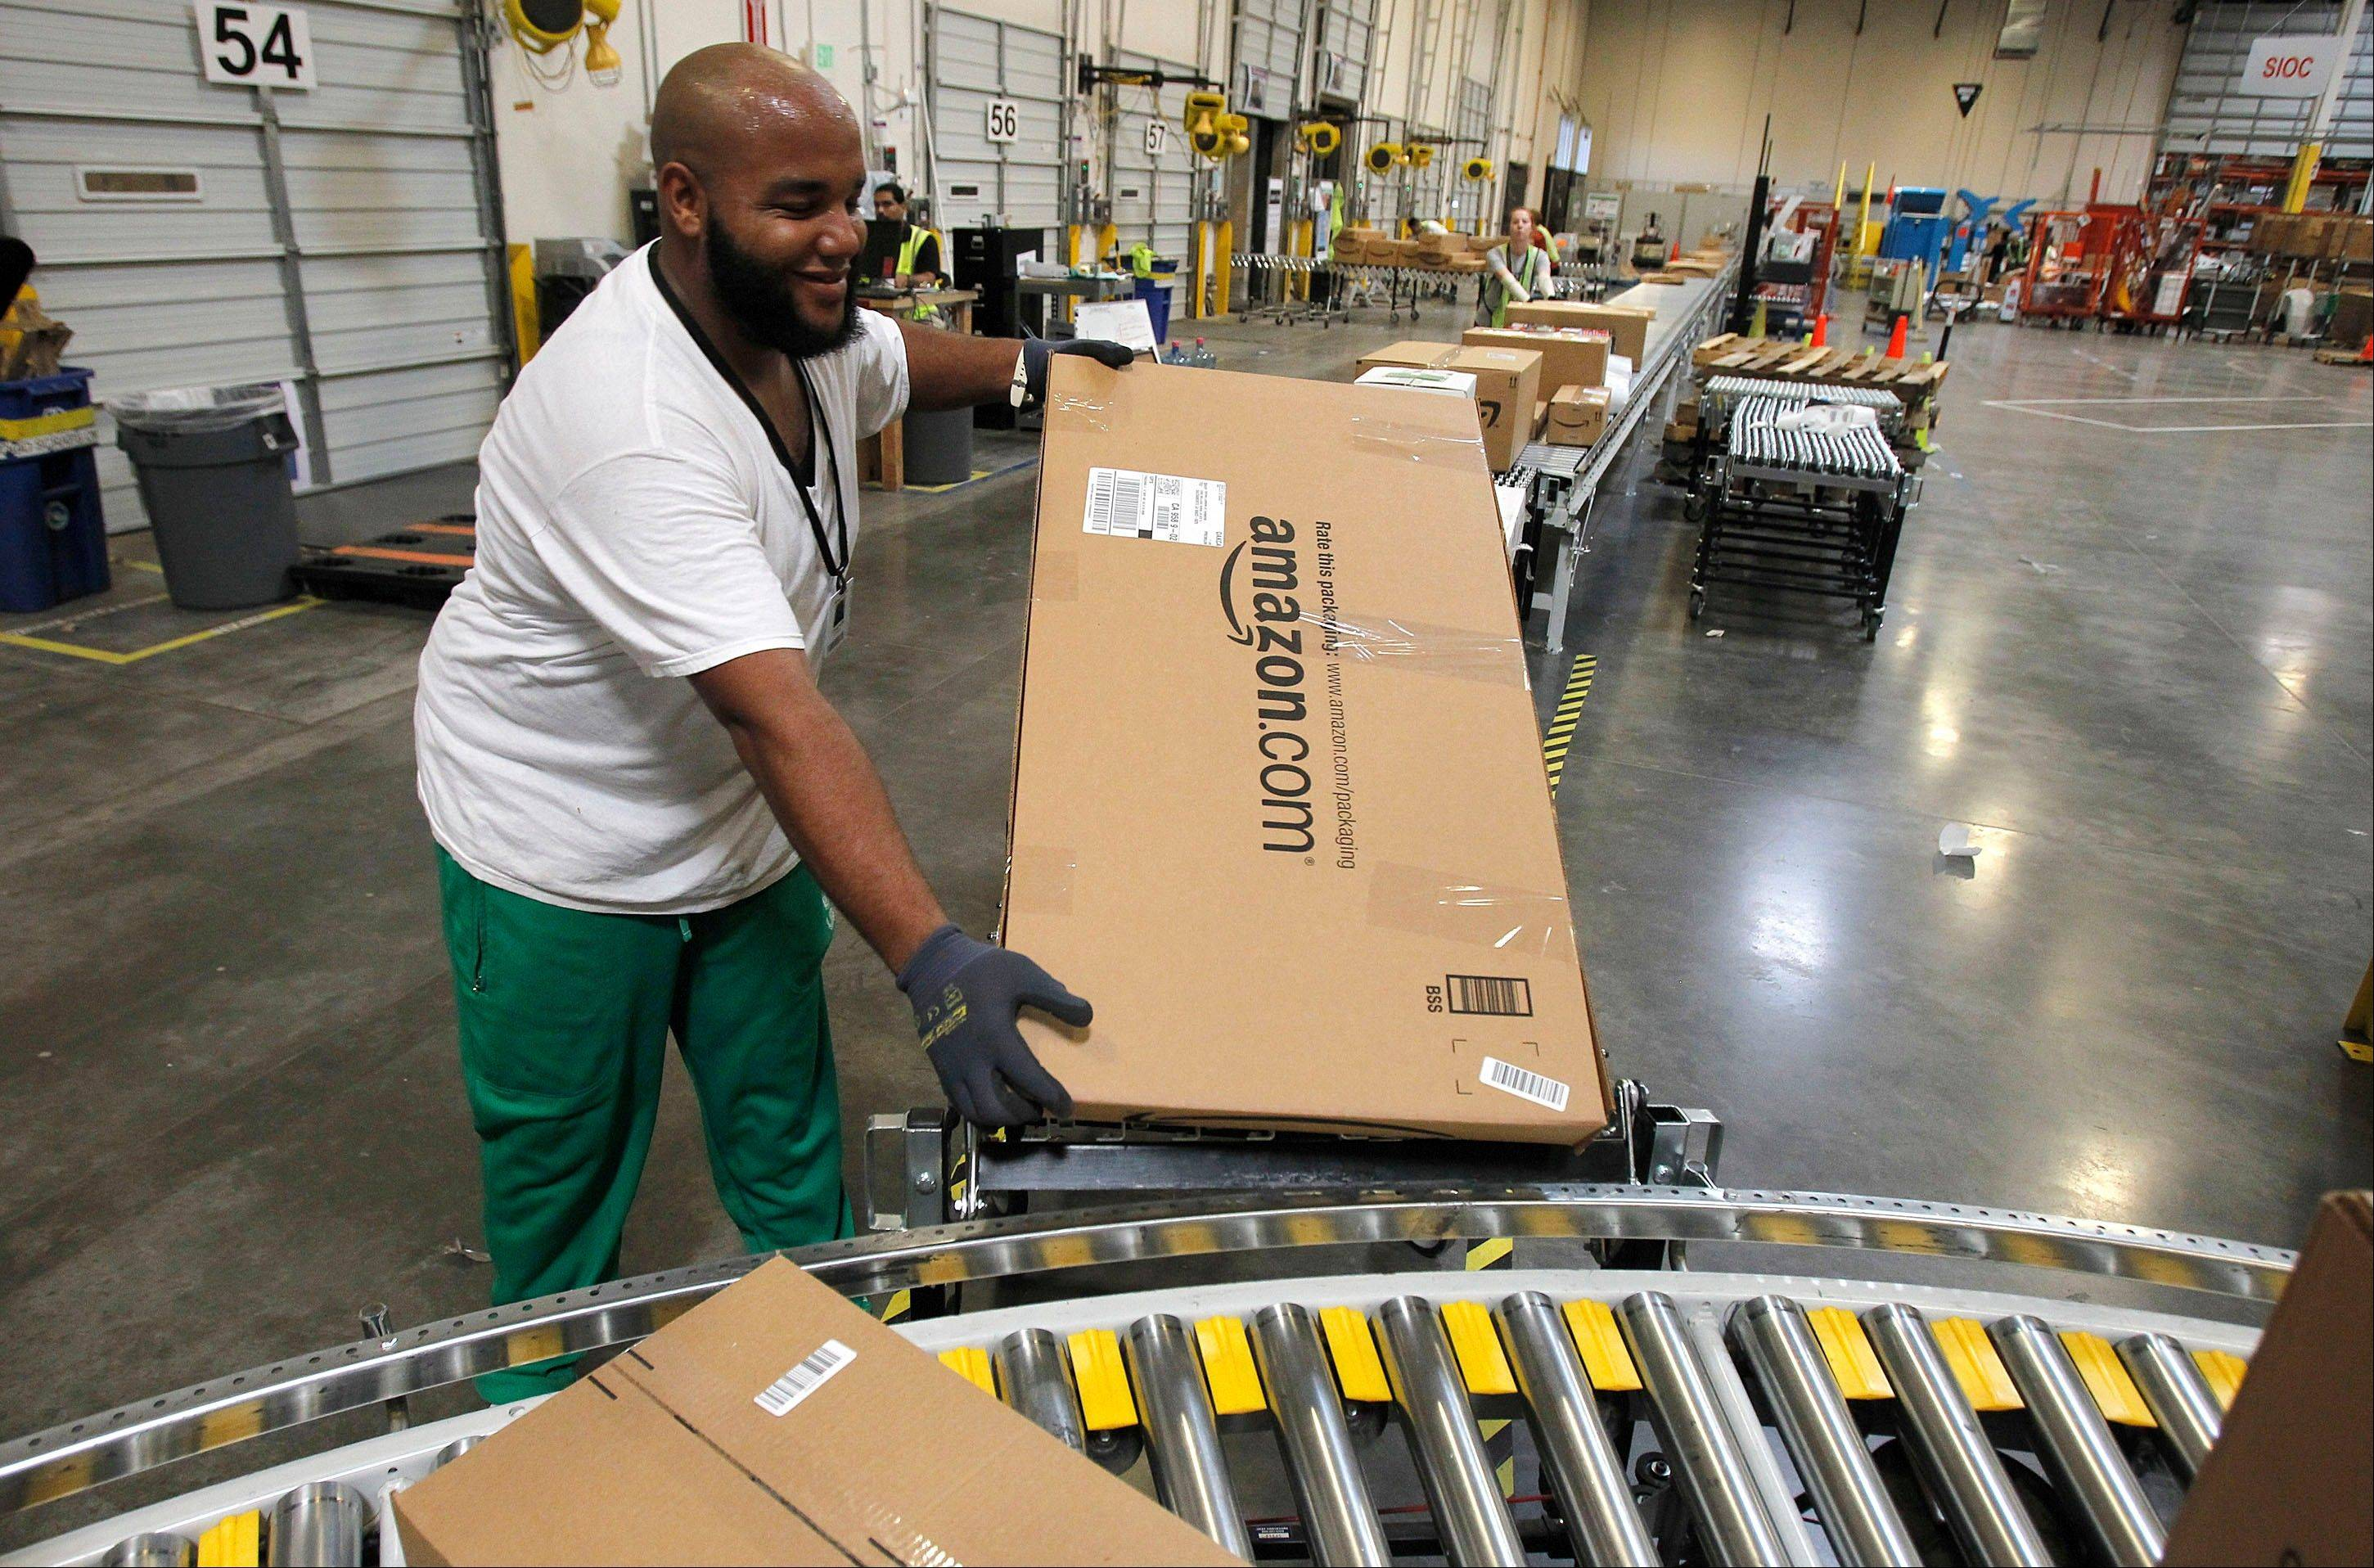 A worker places a package in the correct shipping area at an Amazon.com fulfillment center, in Goodyear, Ariz. Amazon is teaming with the U.S. Postal Service to deliver packages on Sundays.